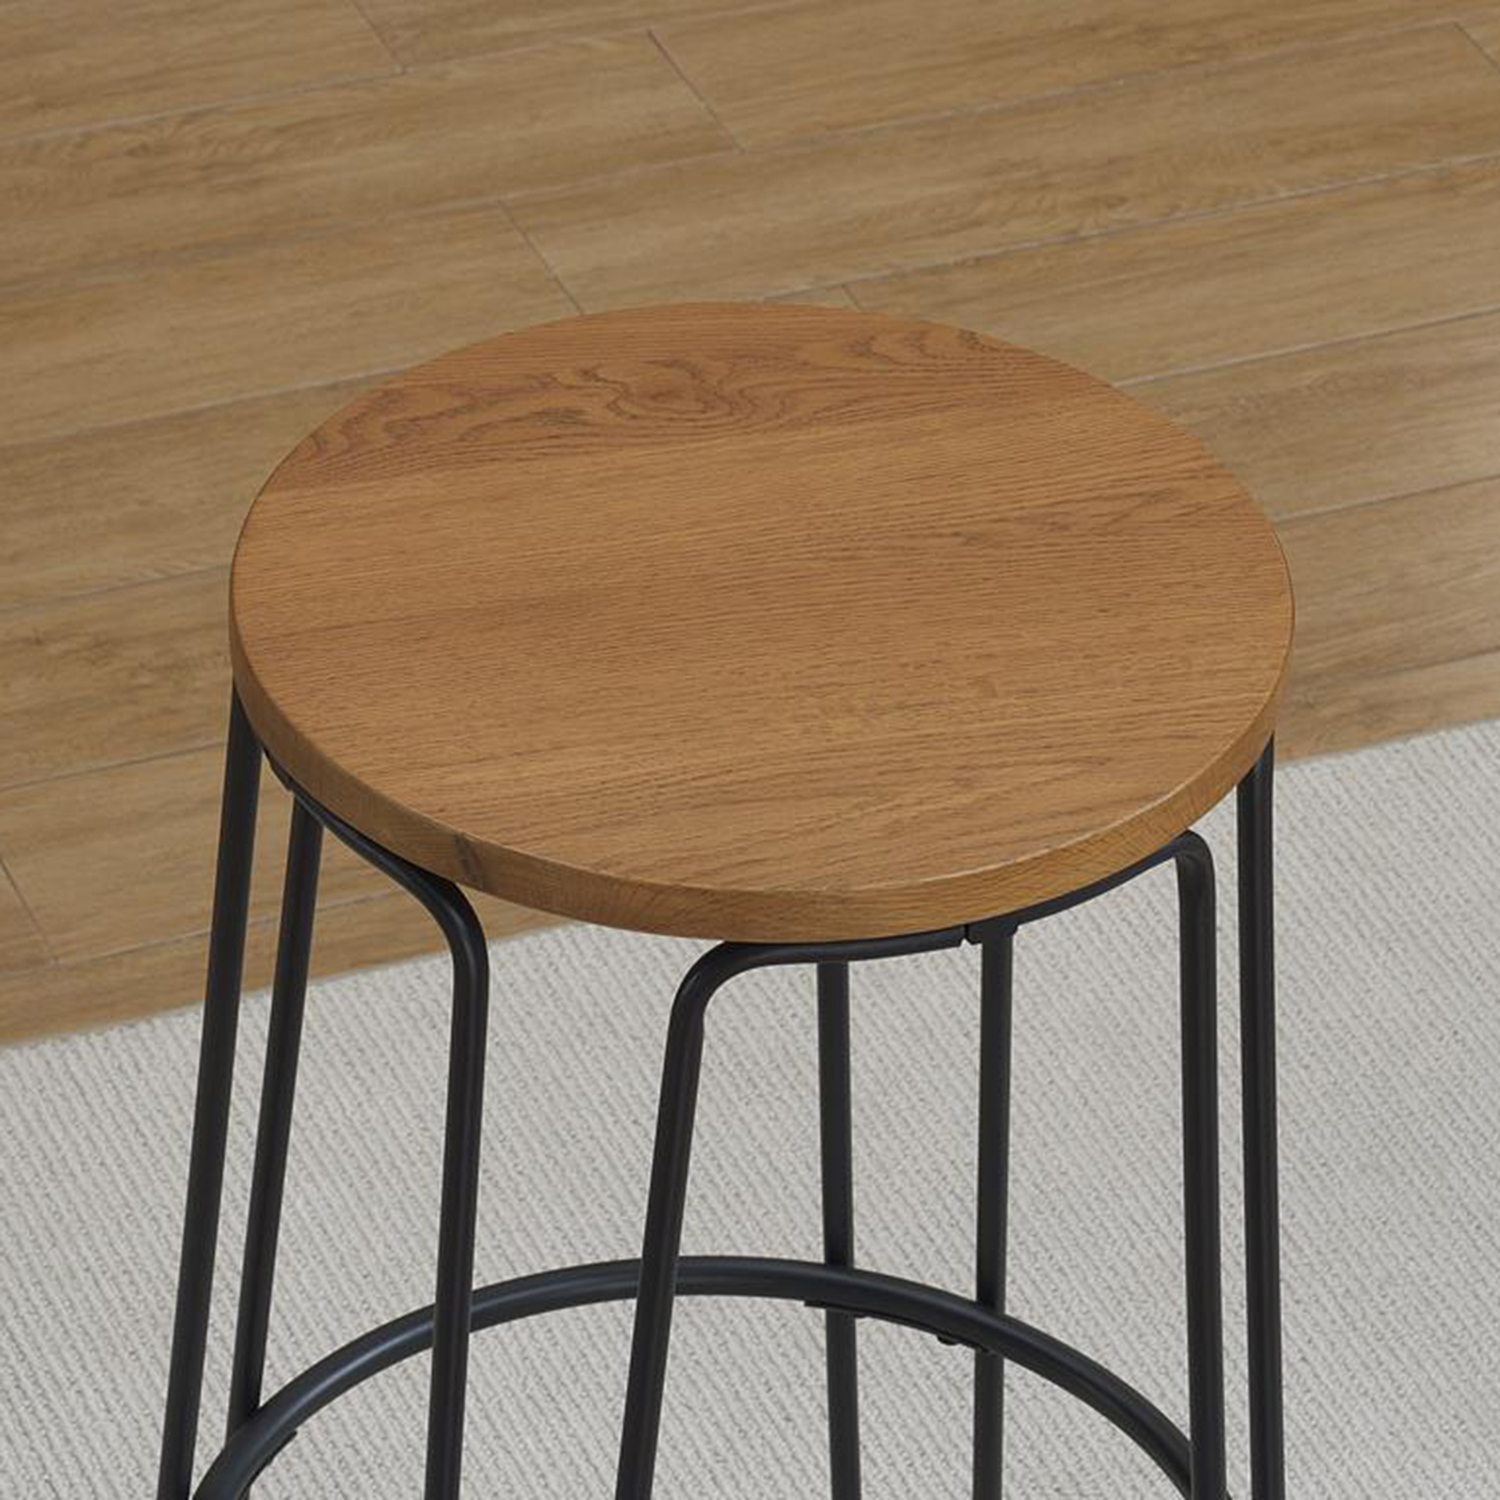 Temple Backless Counter Stool - Flat Black Finish, Honey Oak Seat - AW-B1-150-26W